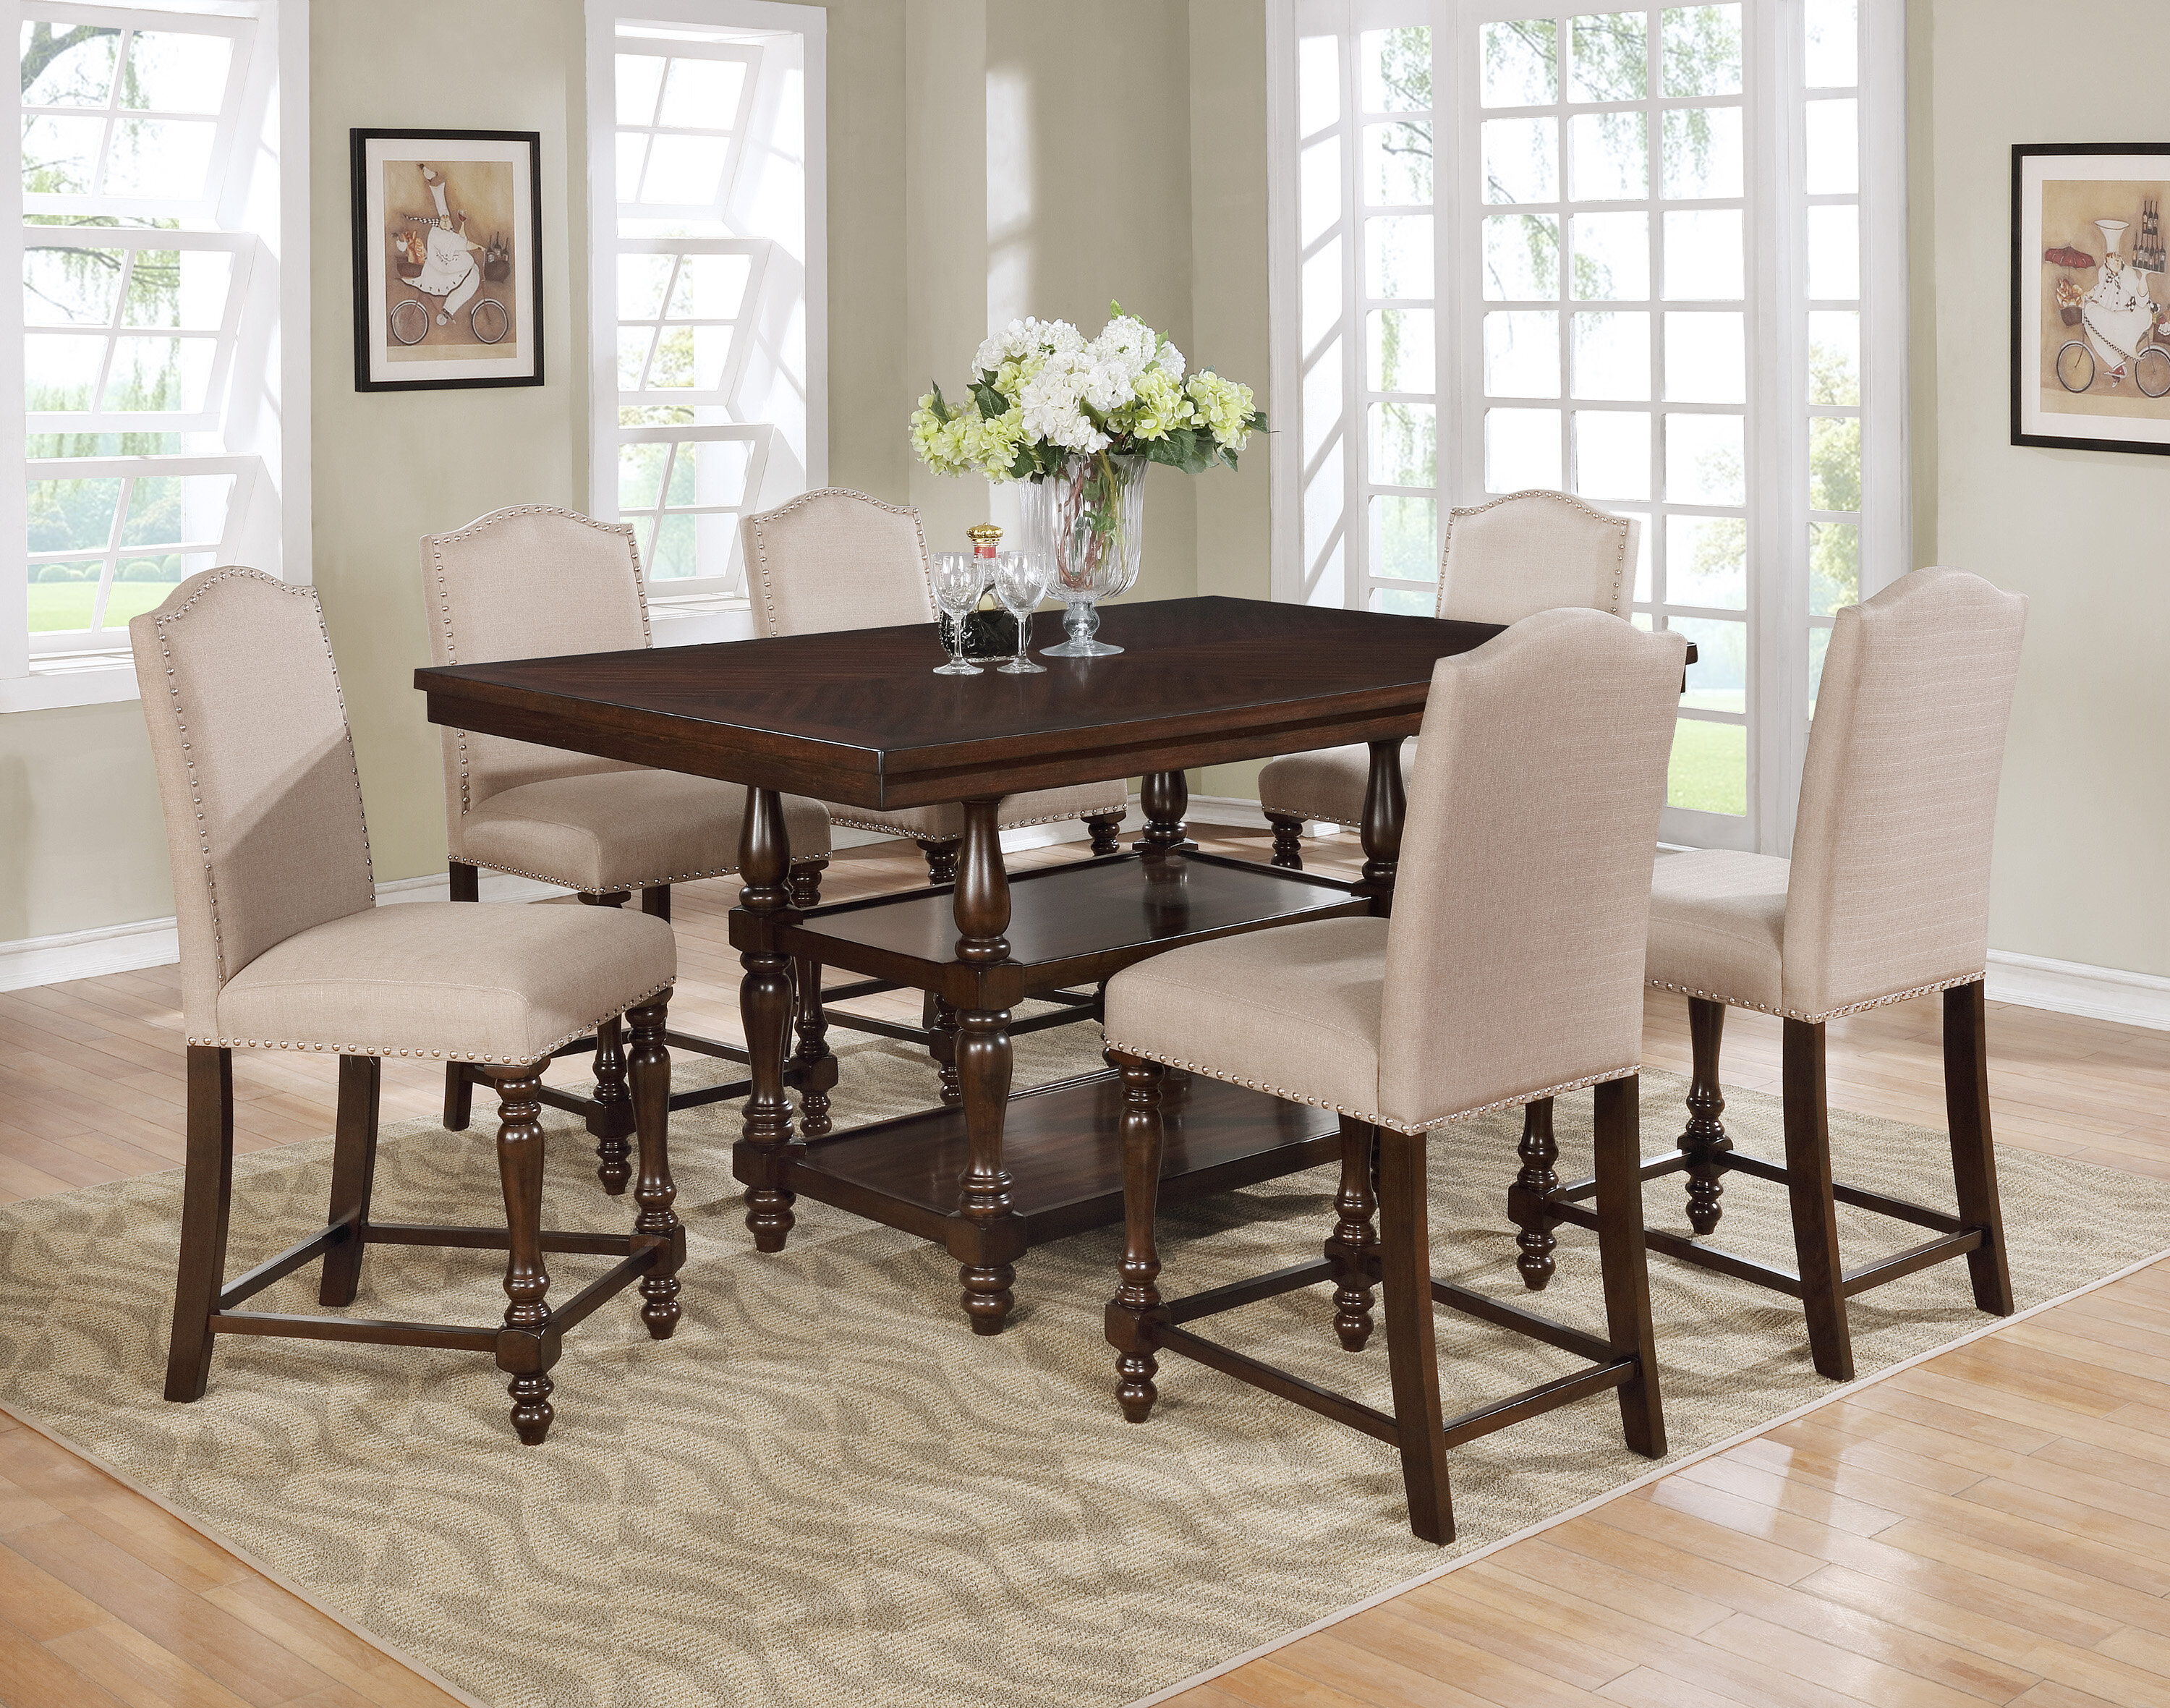 Heady Counter Height Trestle Dining Table